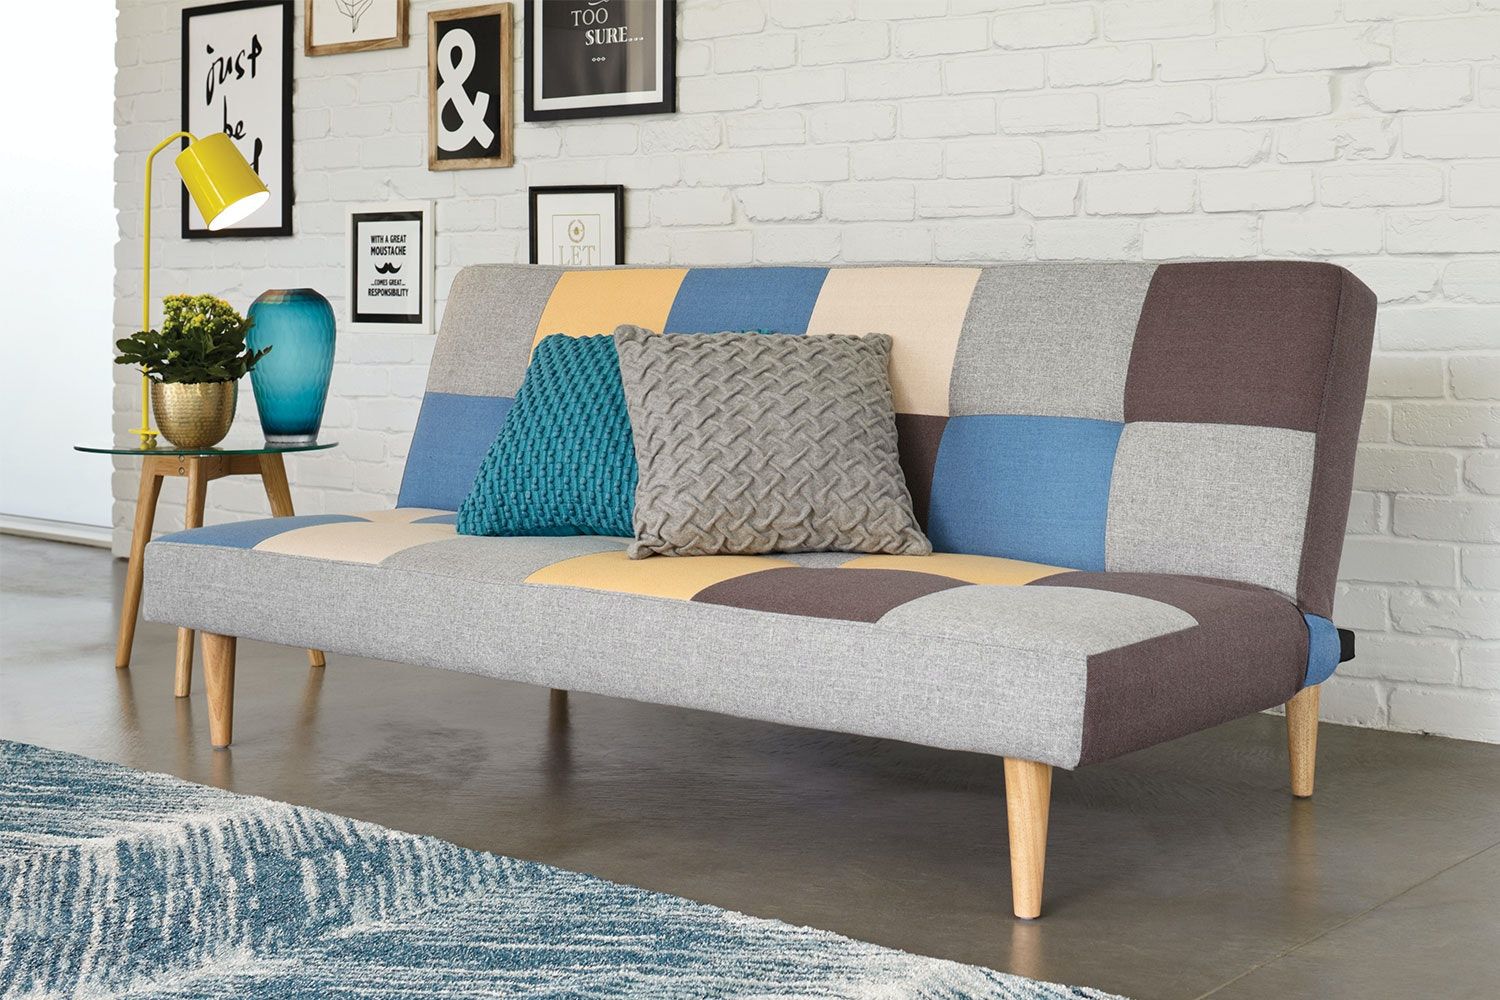 Sofa Beds Sofa Bed Sofa Sofa Beds Sofas Harvey Norman New  ~ New Mattress For Sofa Bed